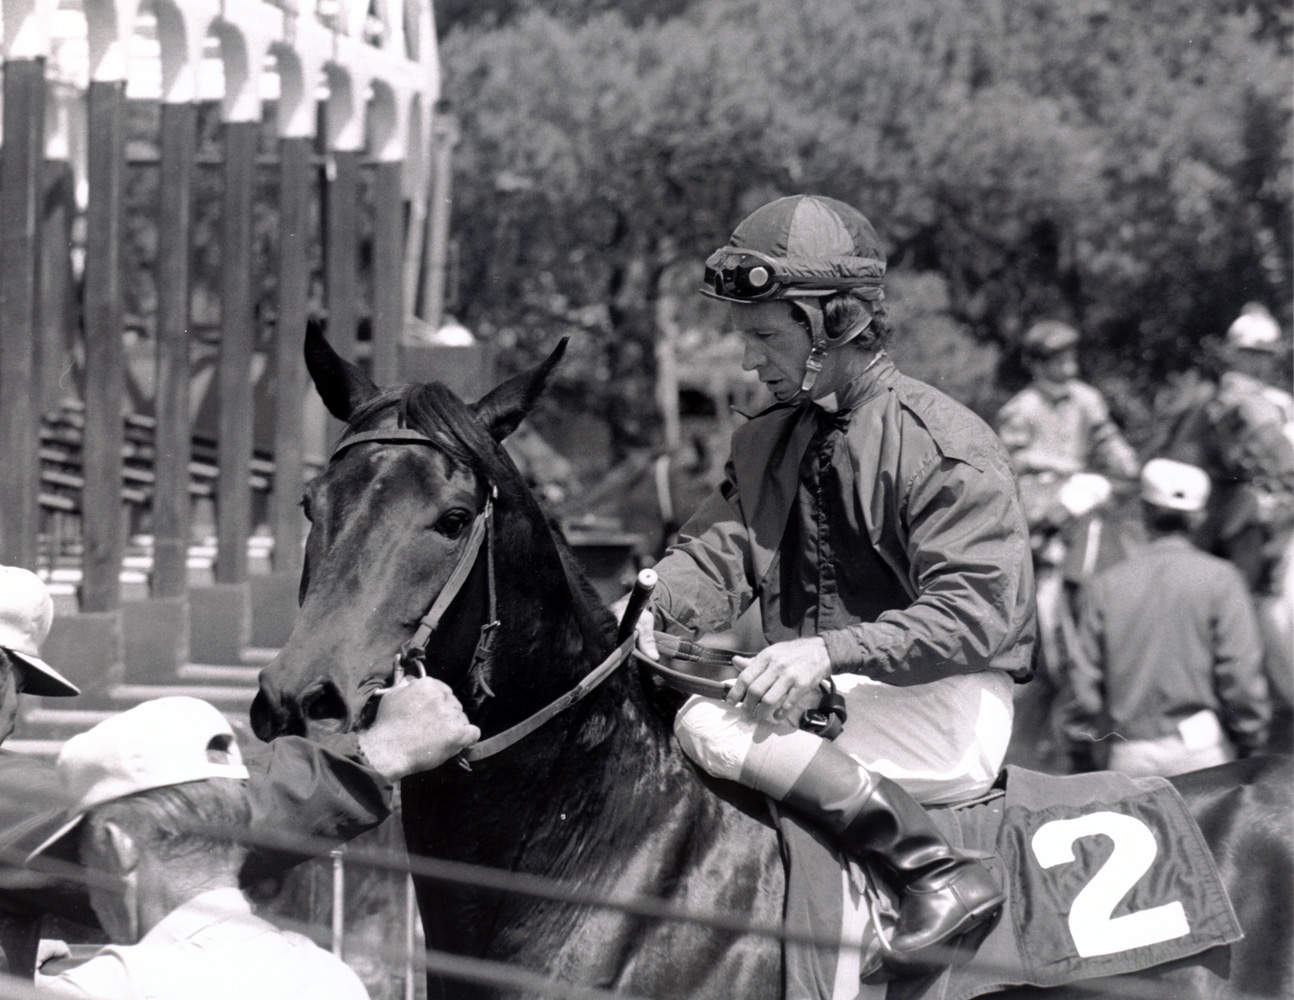 Don Pierce at the starting gate at Santa Anita, April 1973 (Bill Mochon/Museum Collection)